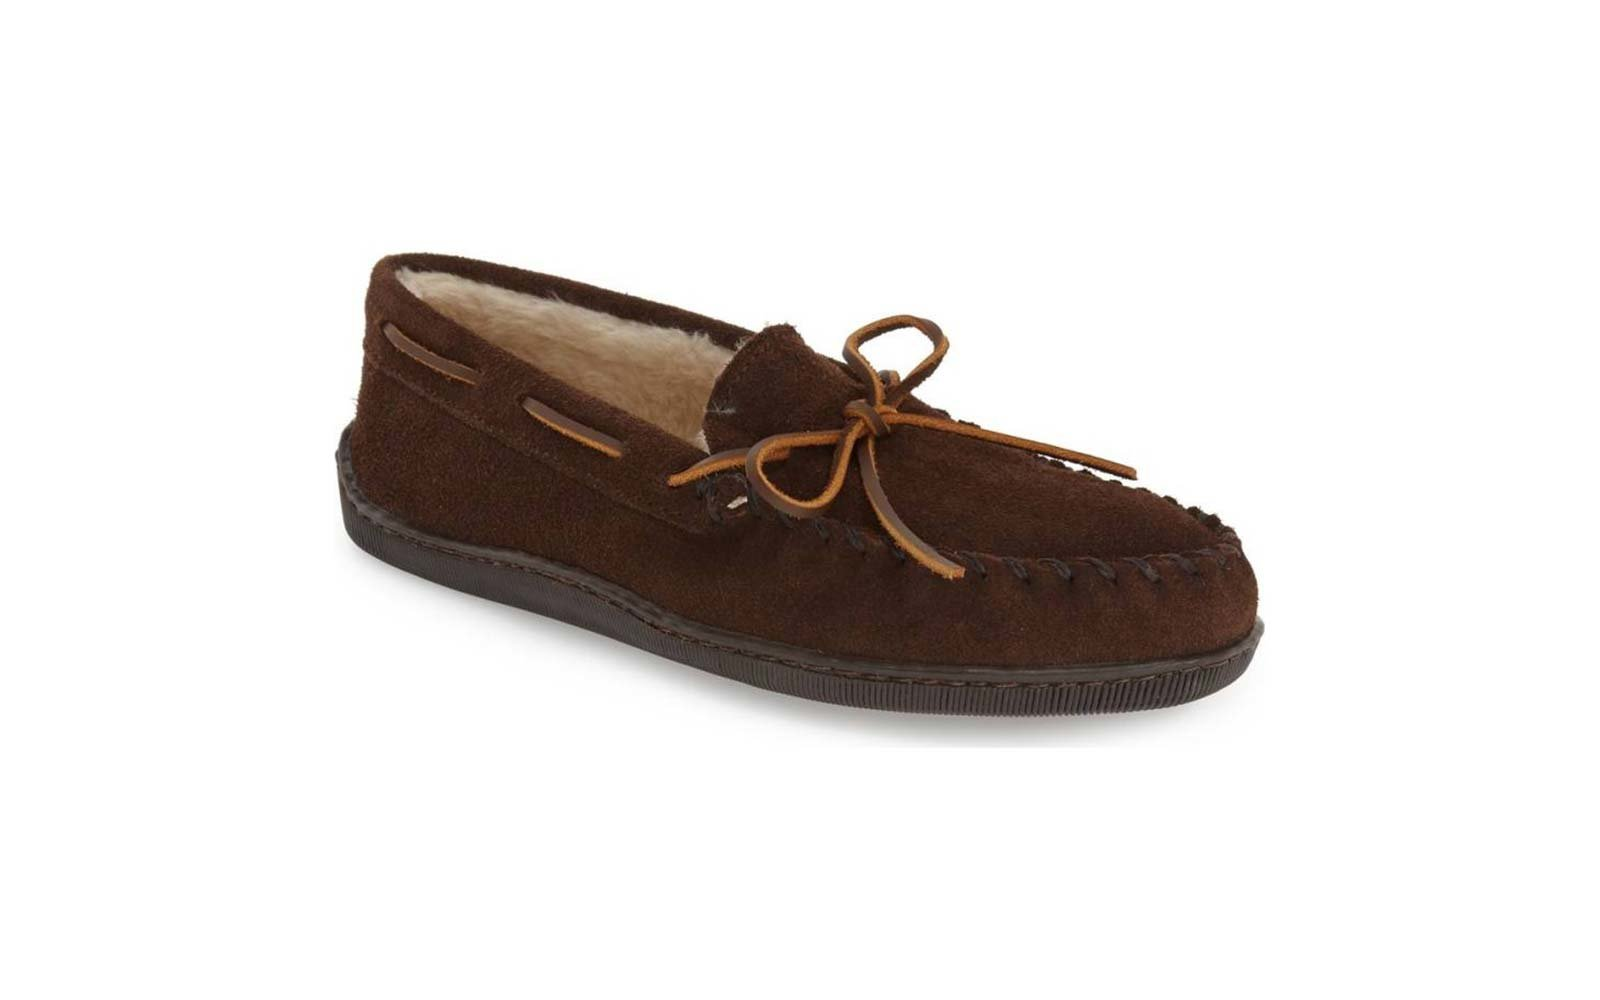 Minnetonka Moccasins shoe slippers